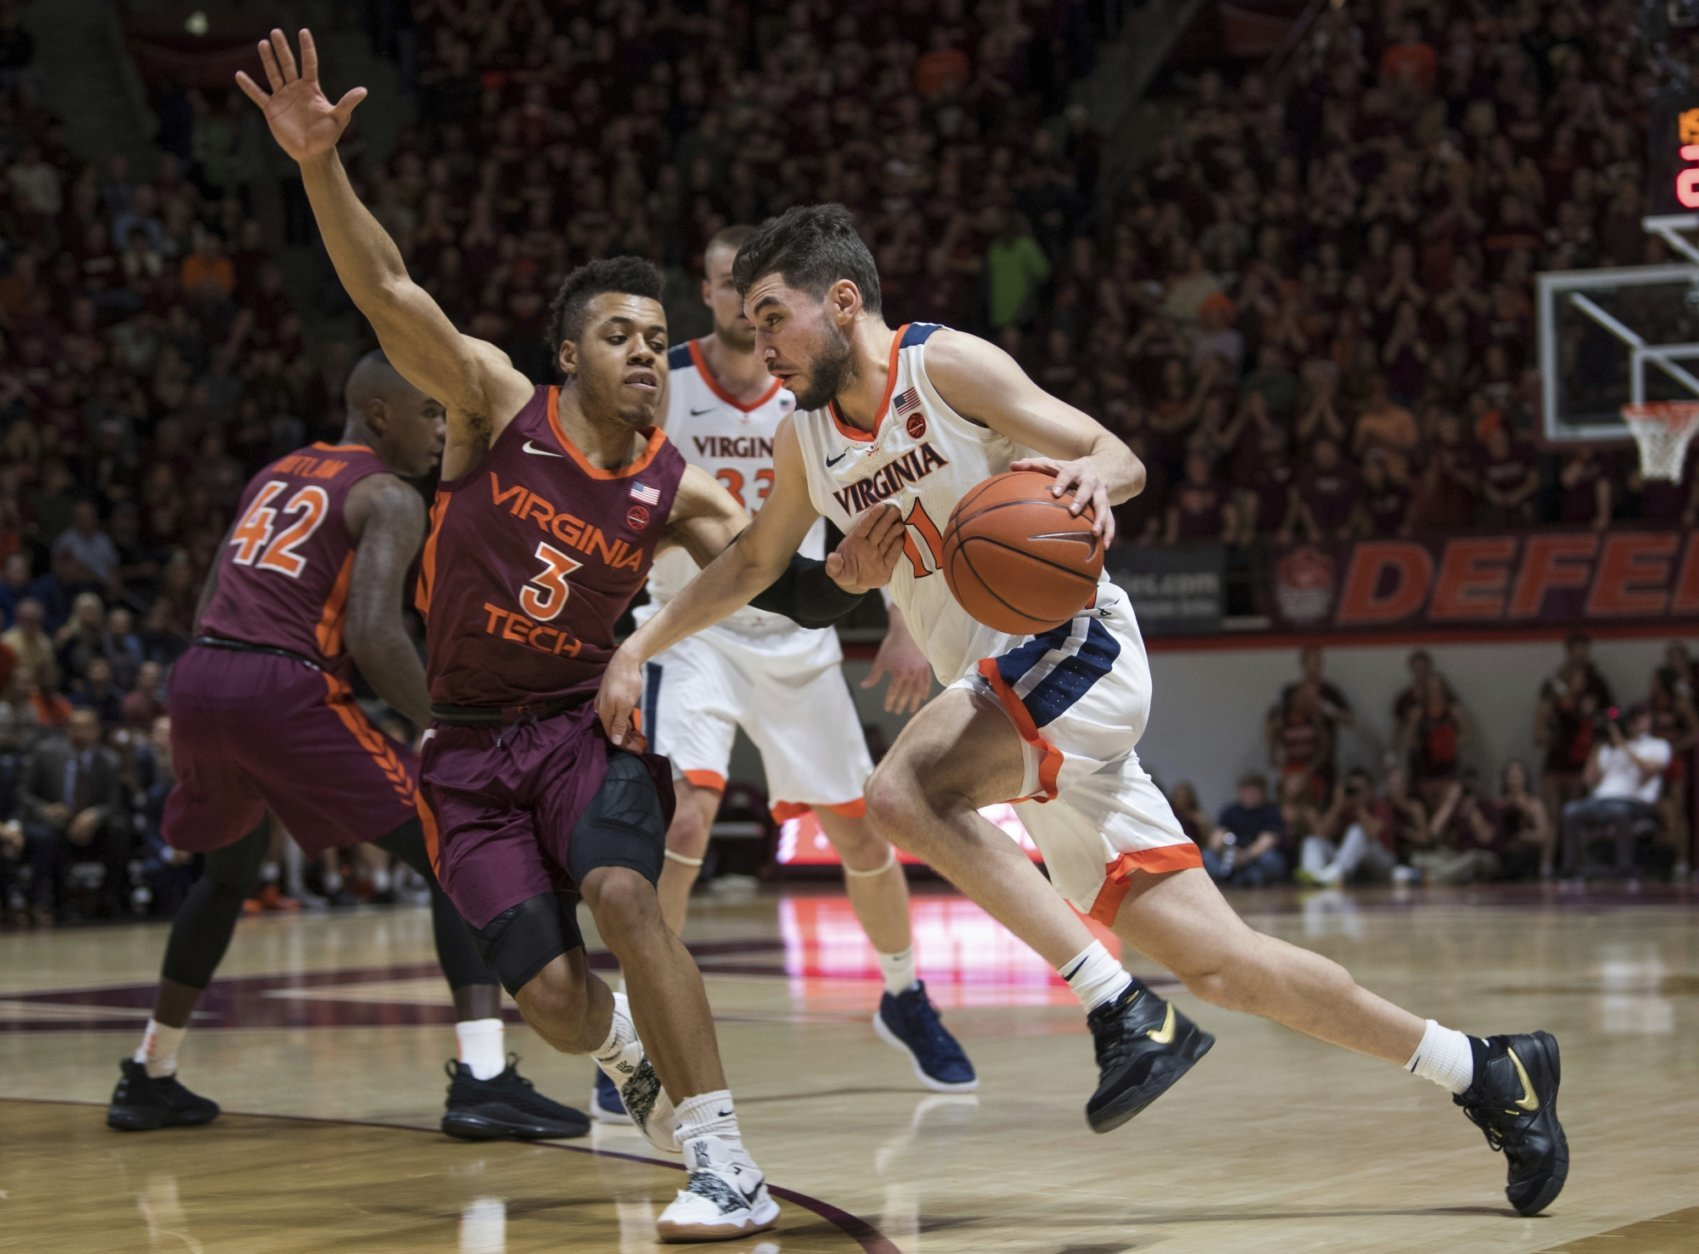 Virginia guard Ty Jerome (11) dribbles past Virginia Tech defender Wabissa Bede (3) during the first half of an NCAA college basketball game in Blacksburg, Va., Monday, Feb. 18, 2019.(AP Photo/Lee Luther Jr.)